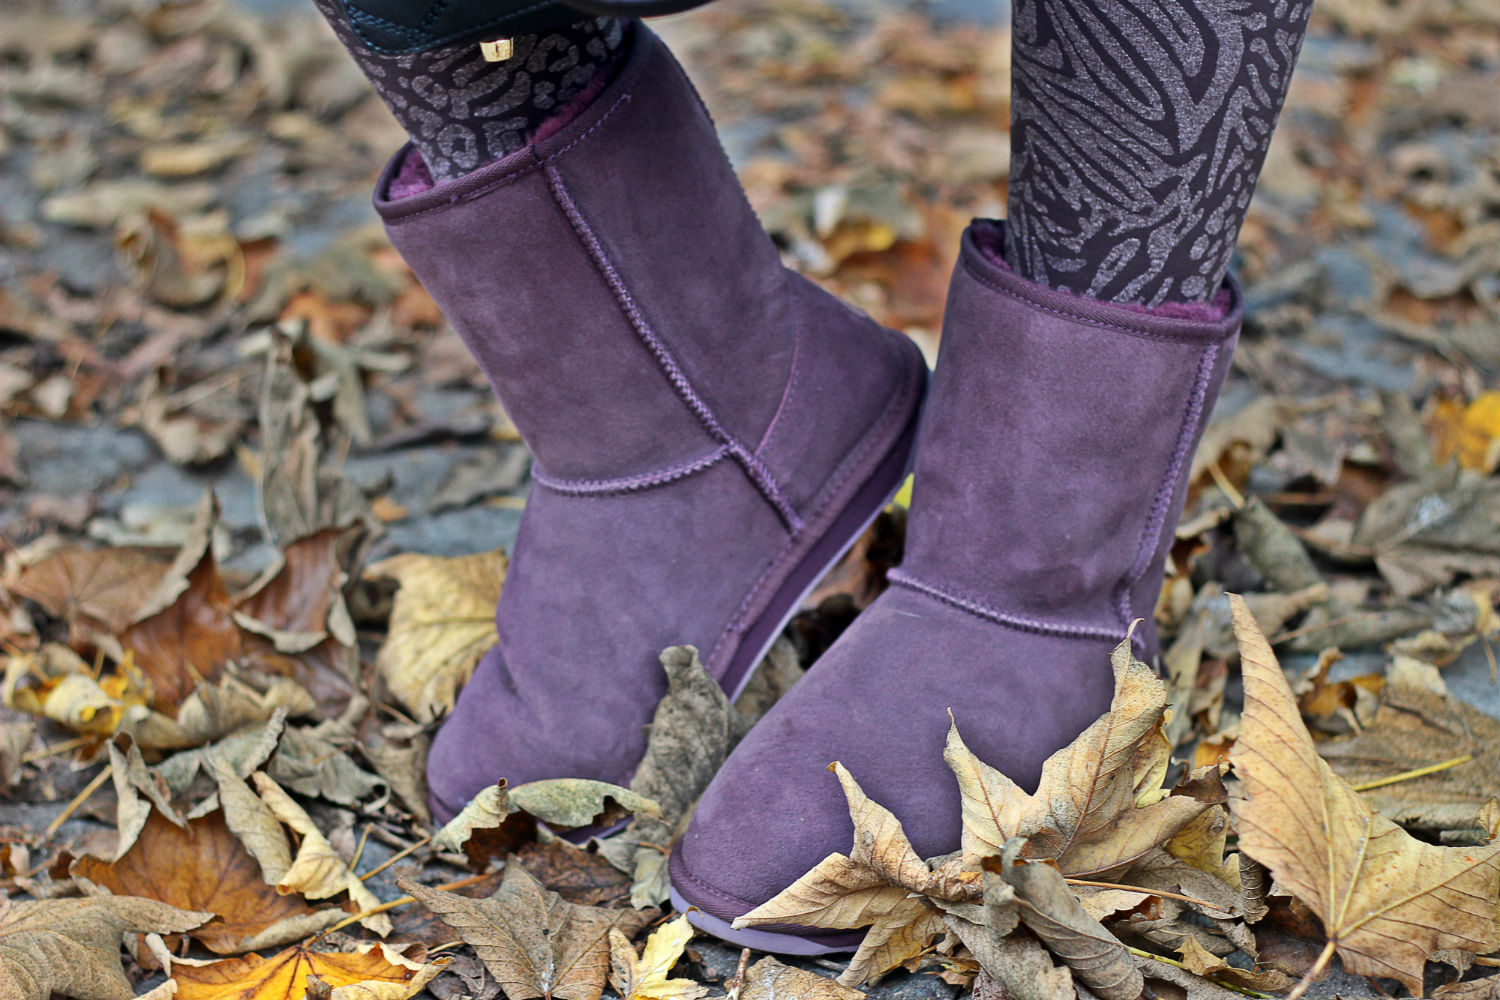 leggings emilio cavallini winter 2016 - Emu italia - purple boots - moda inverno 2016